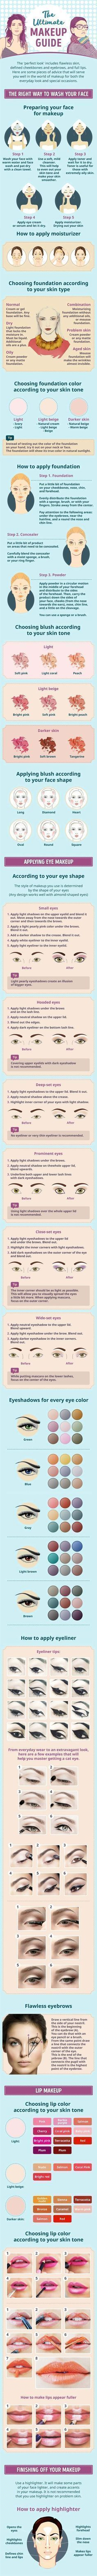 Best Makeup Tutorials for Teens -The Ultimate Makeup Guide You Can't Live Without - Easy Makeup Ideas for Beginners - Step by Step Tutorials for Foundation, Eye Shadow, Lipstick, Cheeks, Contour, Eyebrows and Eyes - Awesome Makeup Hacks and Tips for Simple DIY Beauty - Day and Evening Looks http://diyprojectsforteens.com/makeup-tutorials-teens #contouringmakeup #lipsticktutorlas #simplemakeuptips